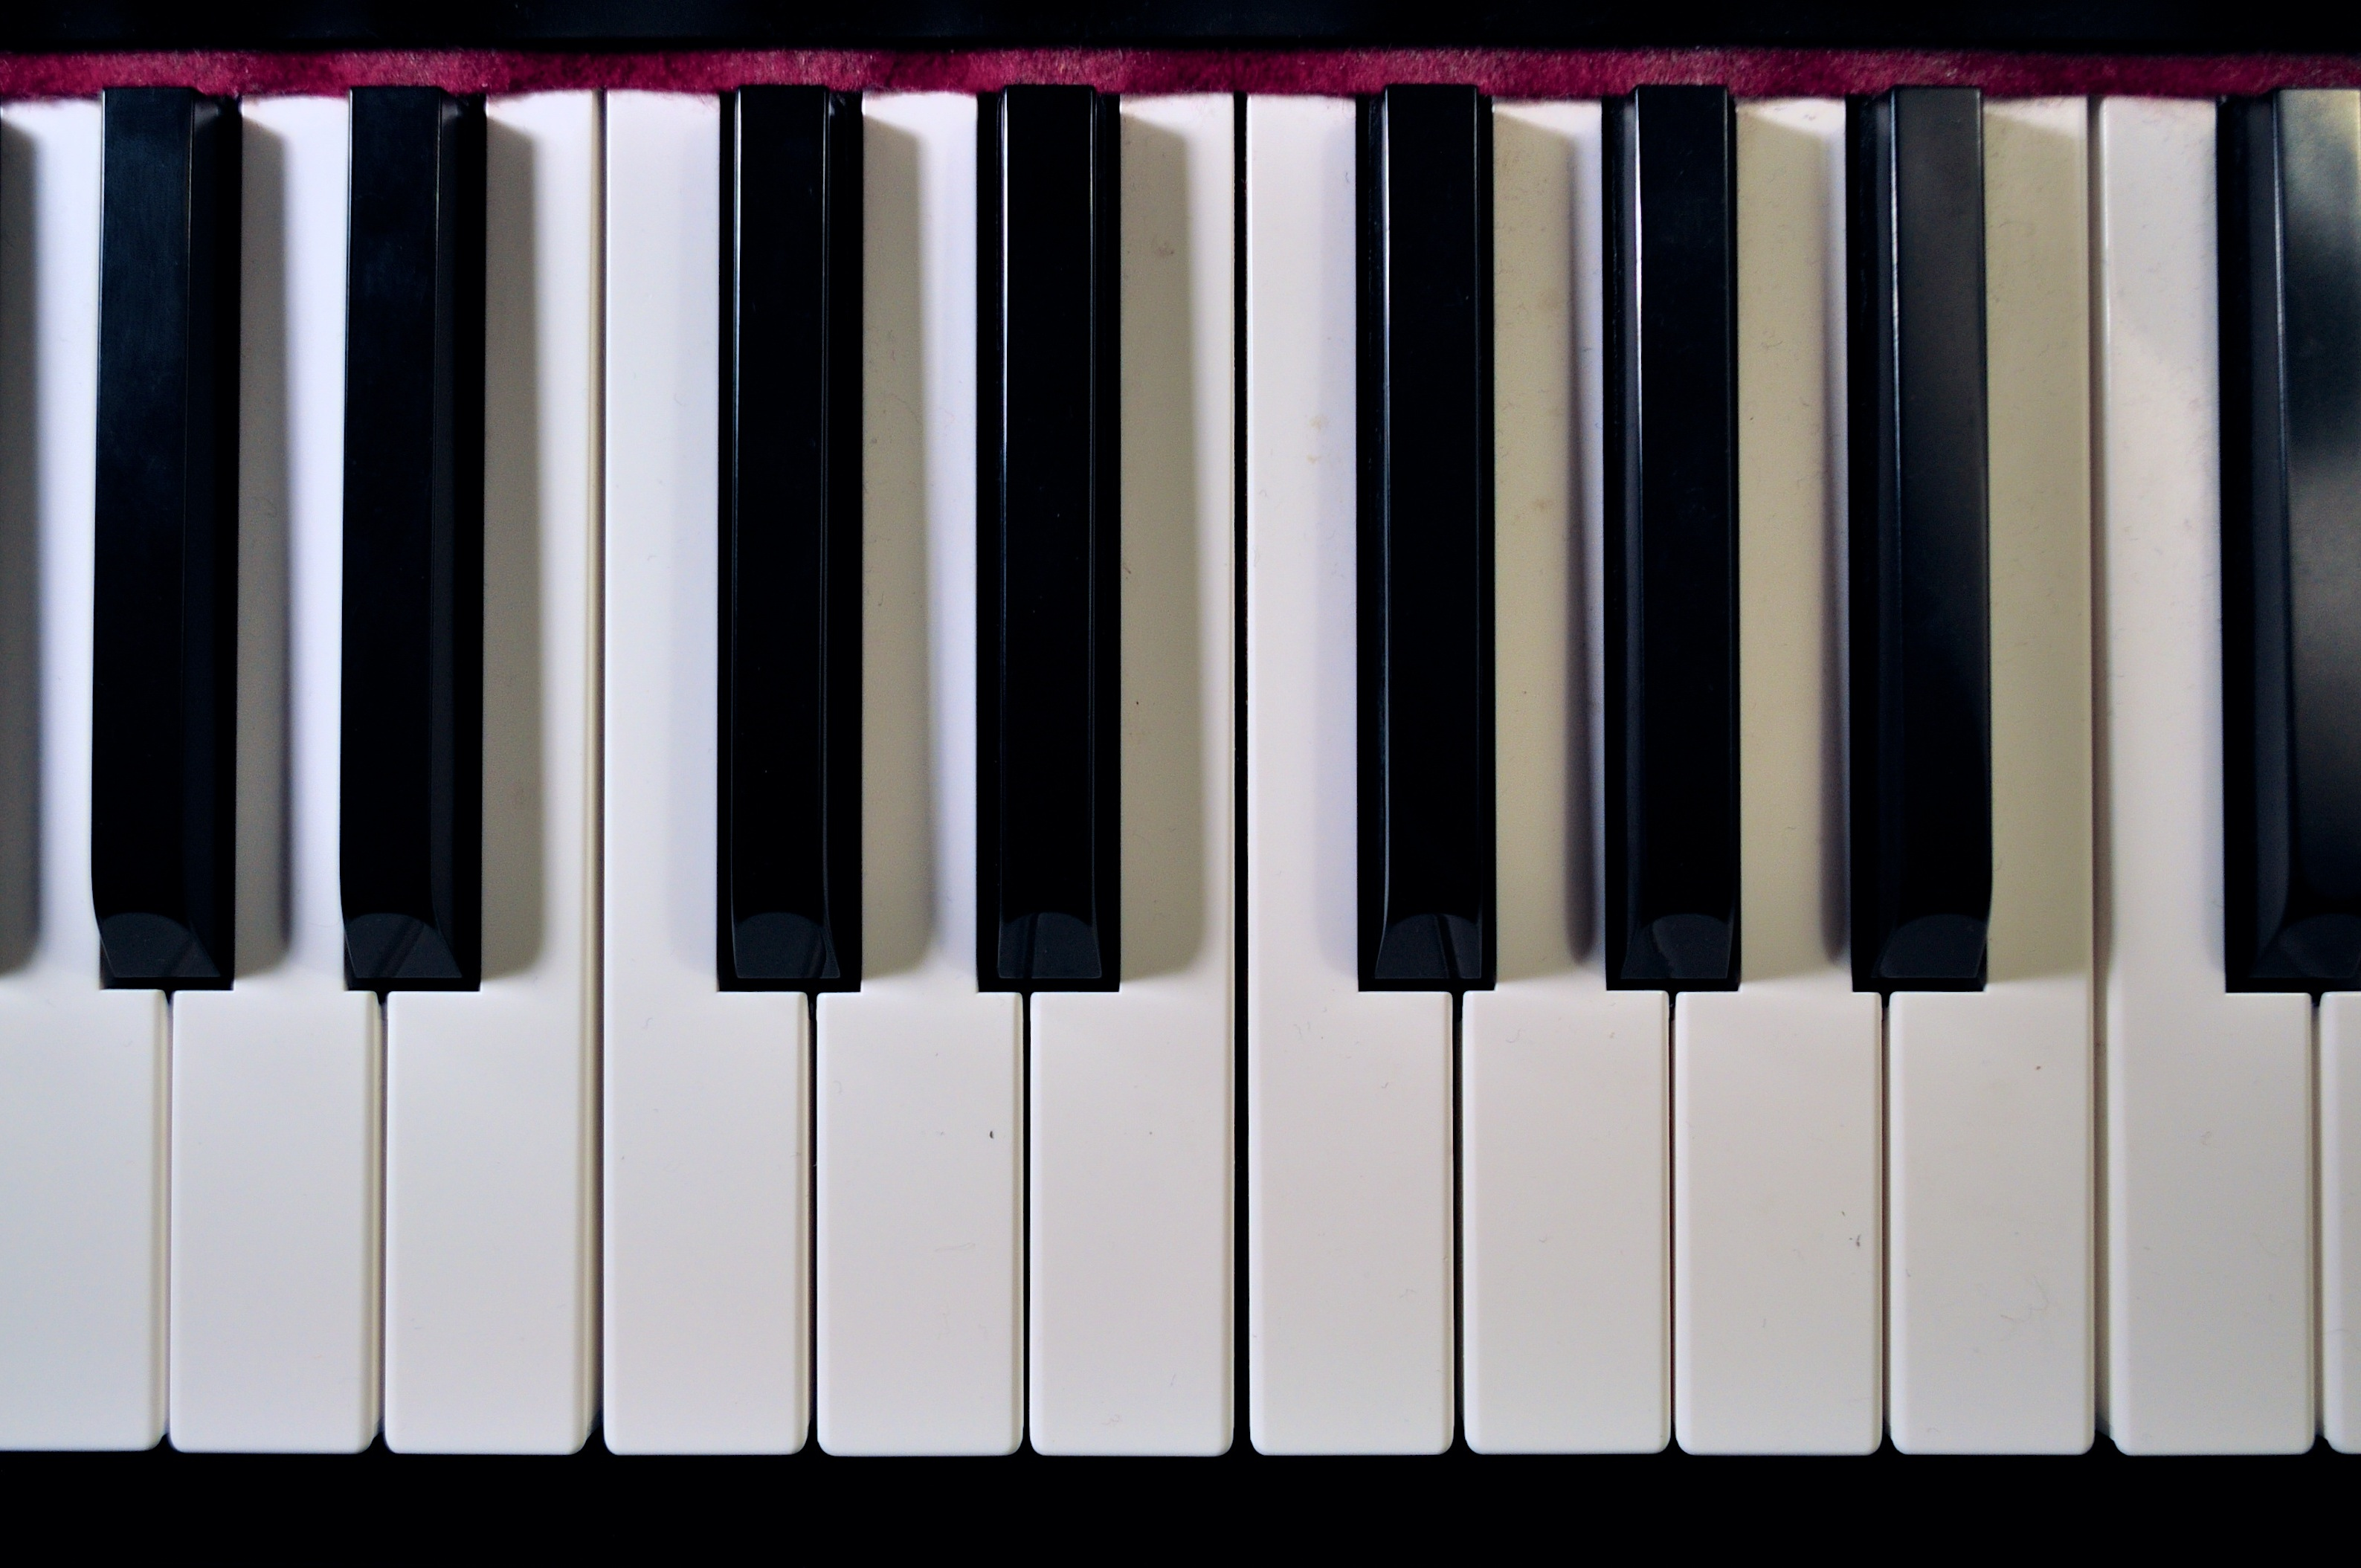 File:Piano Keyboard.jpg - Wikimedia Commons